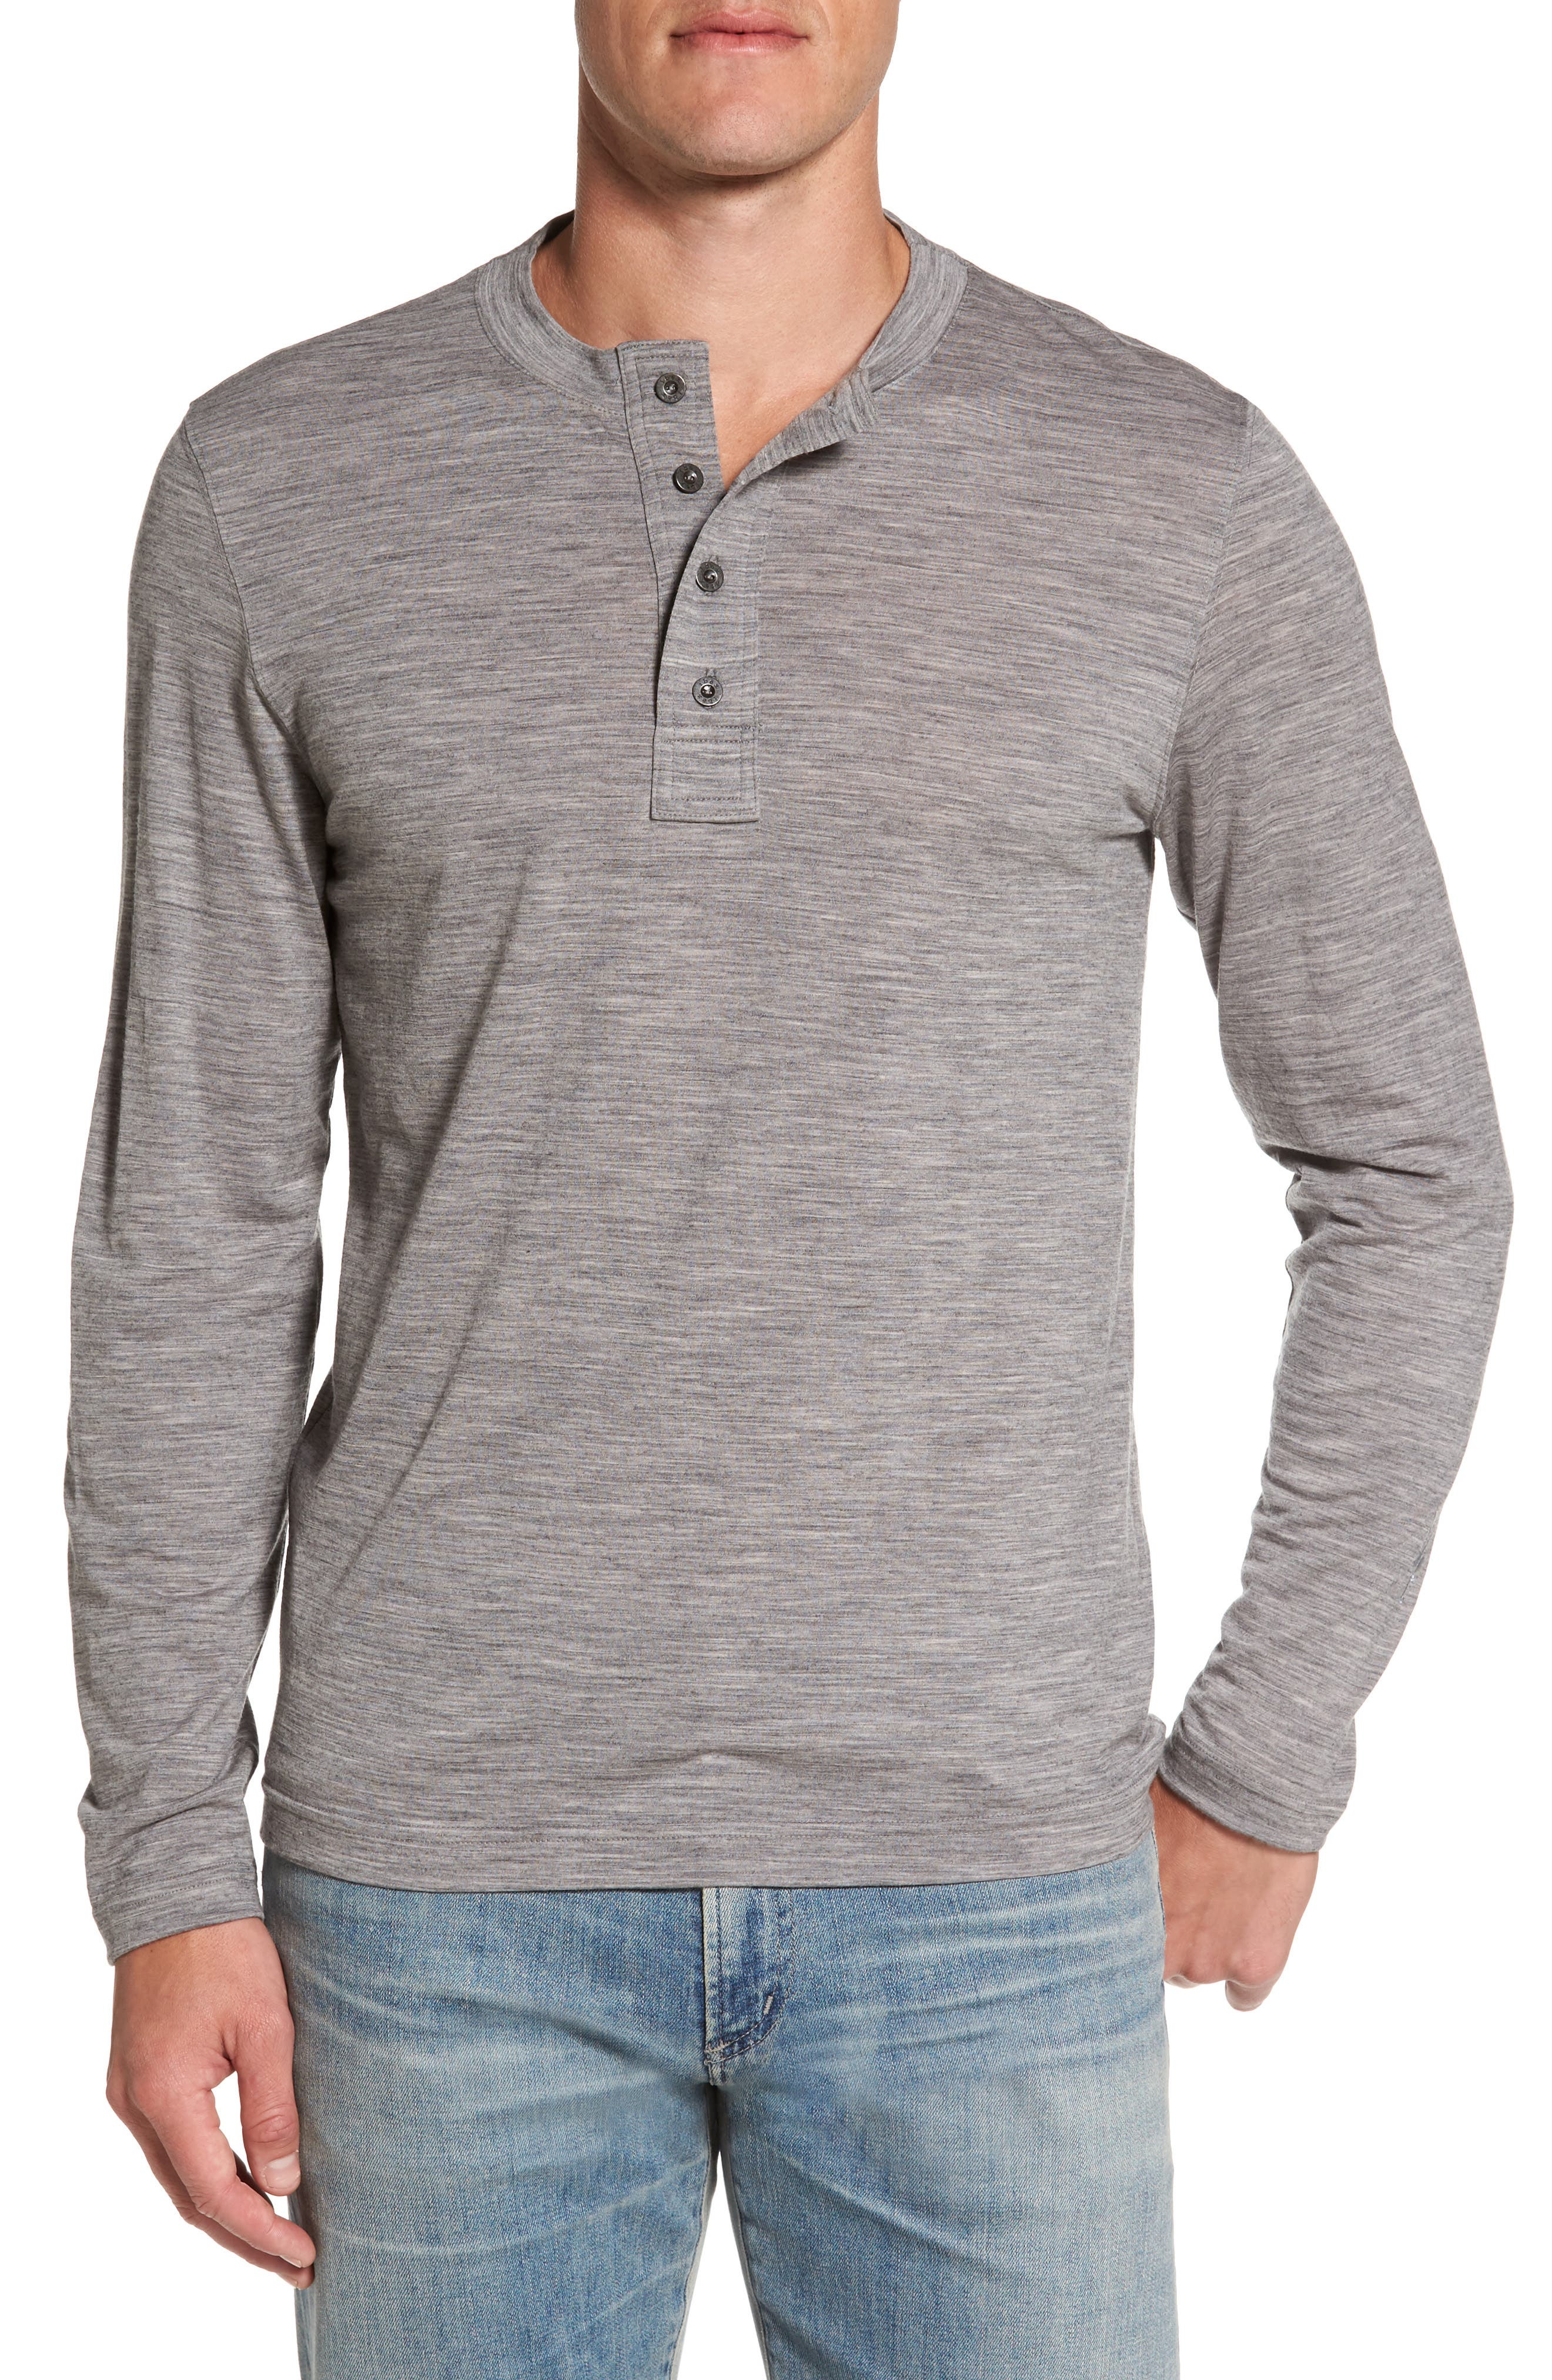 Odyssey Merino Wool Blend Henley,                             Main thumbnail 1, color,                             Stone Grey Heather